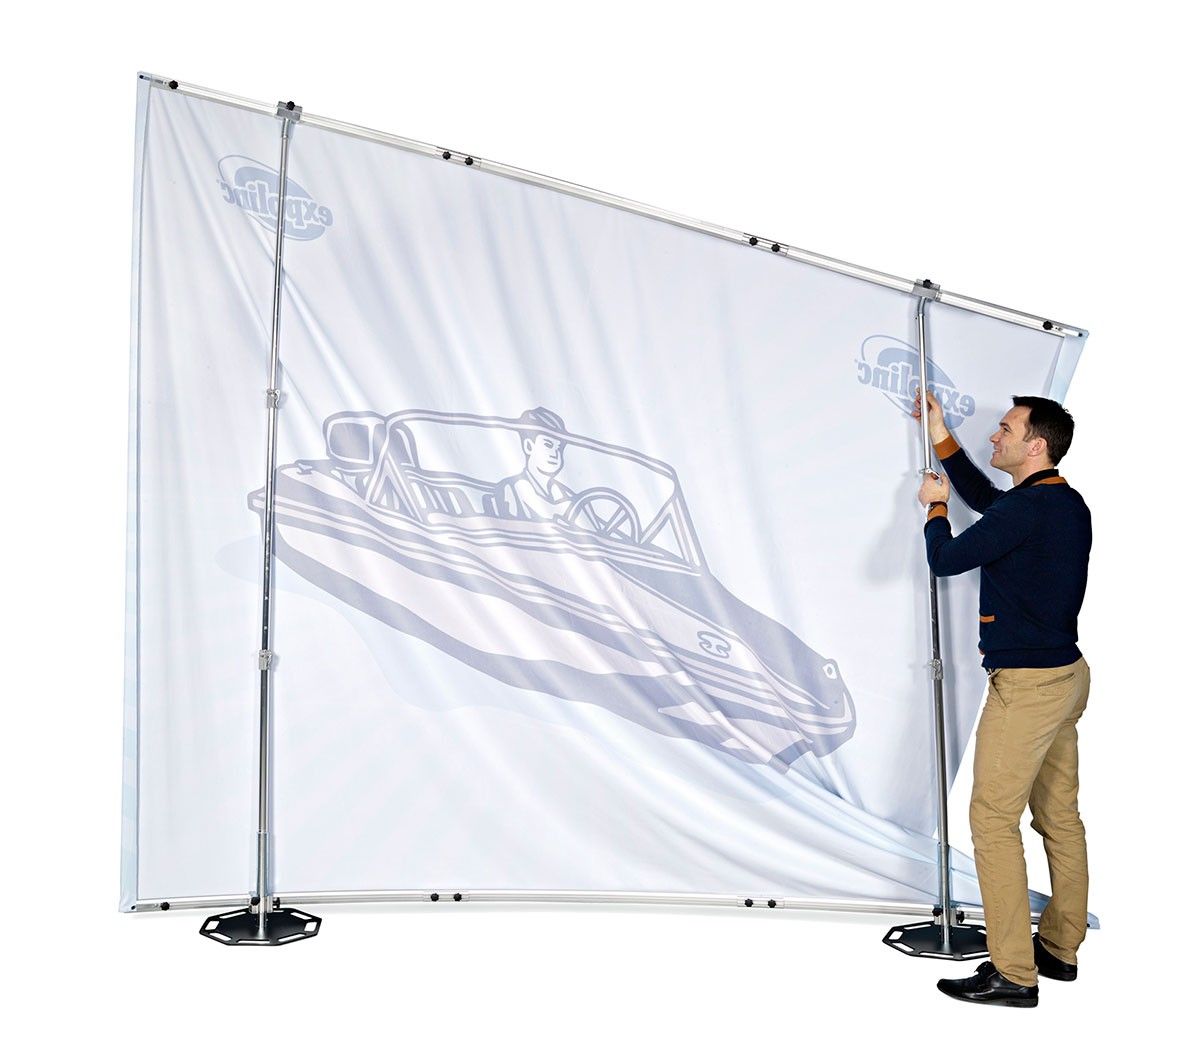 Expolinc Fabric System 30x8 Straight Wall